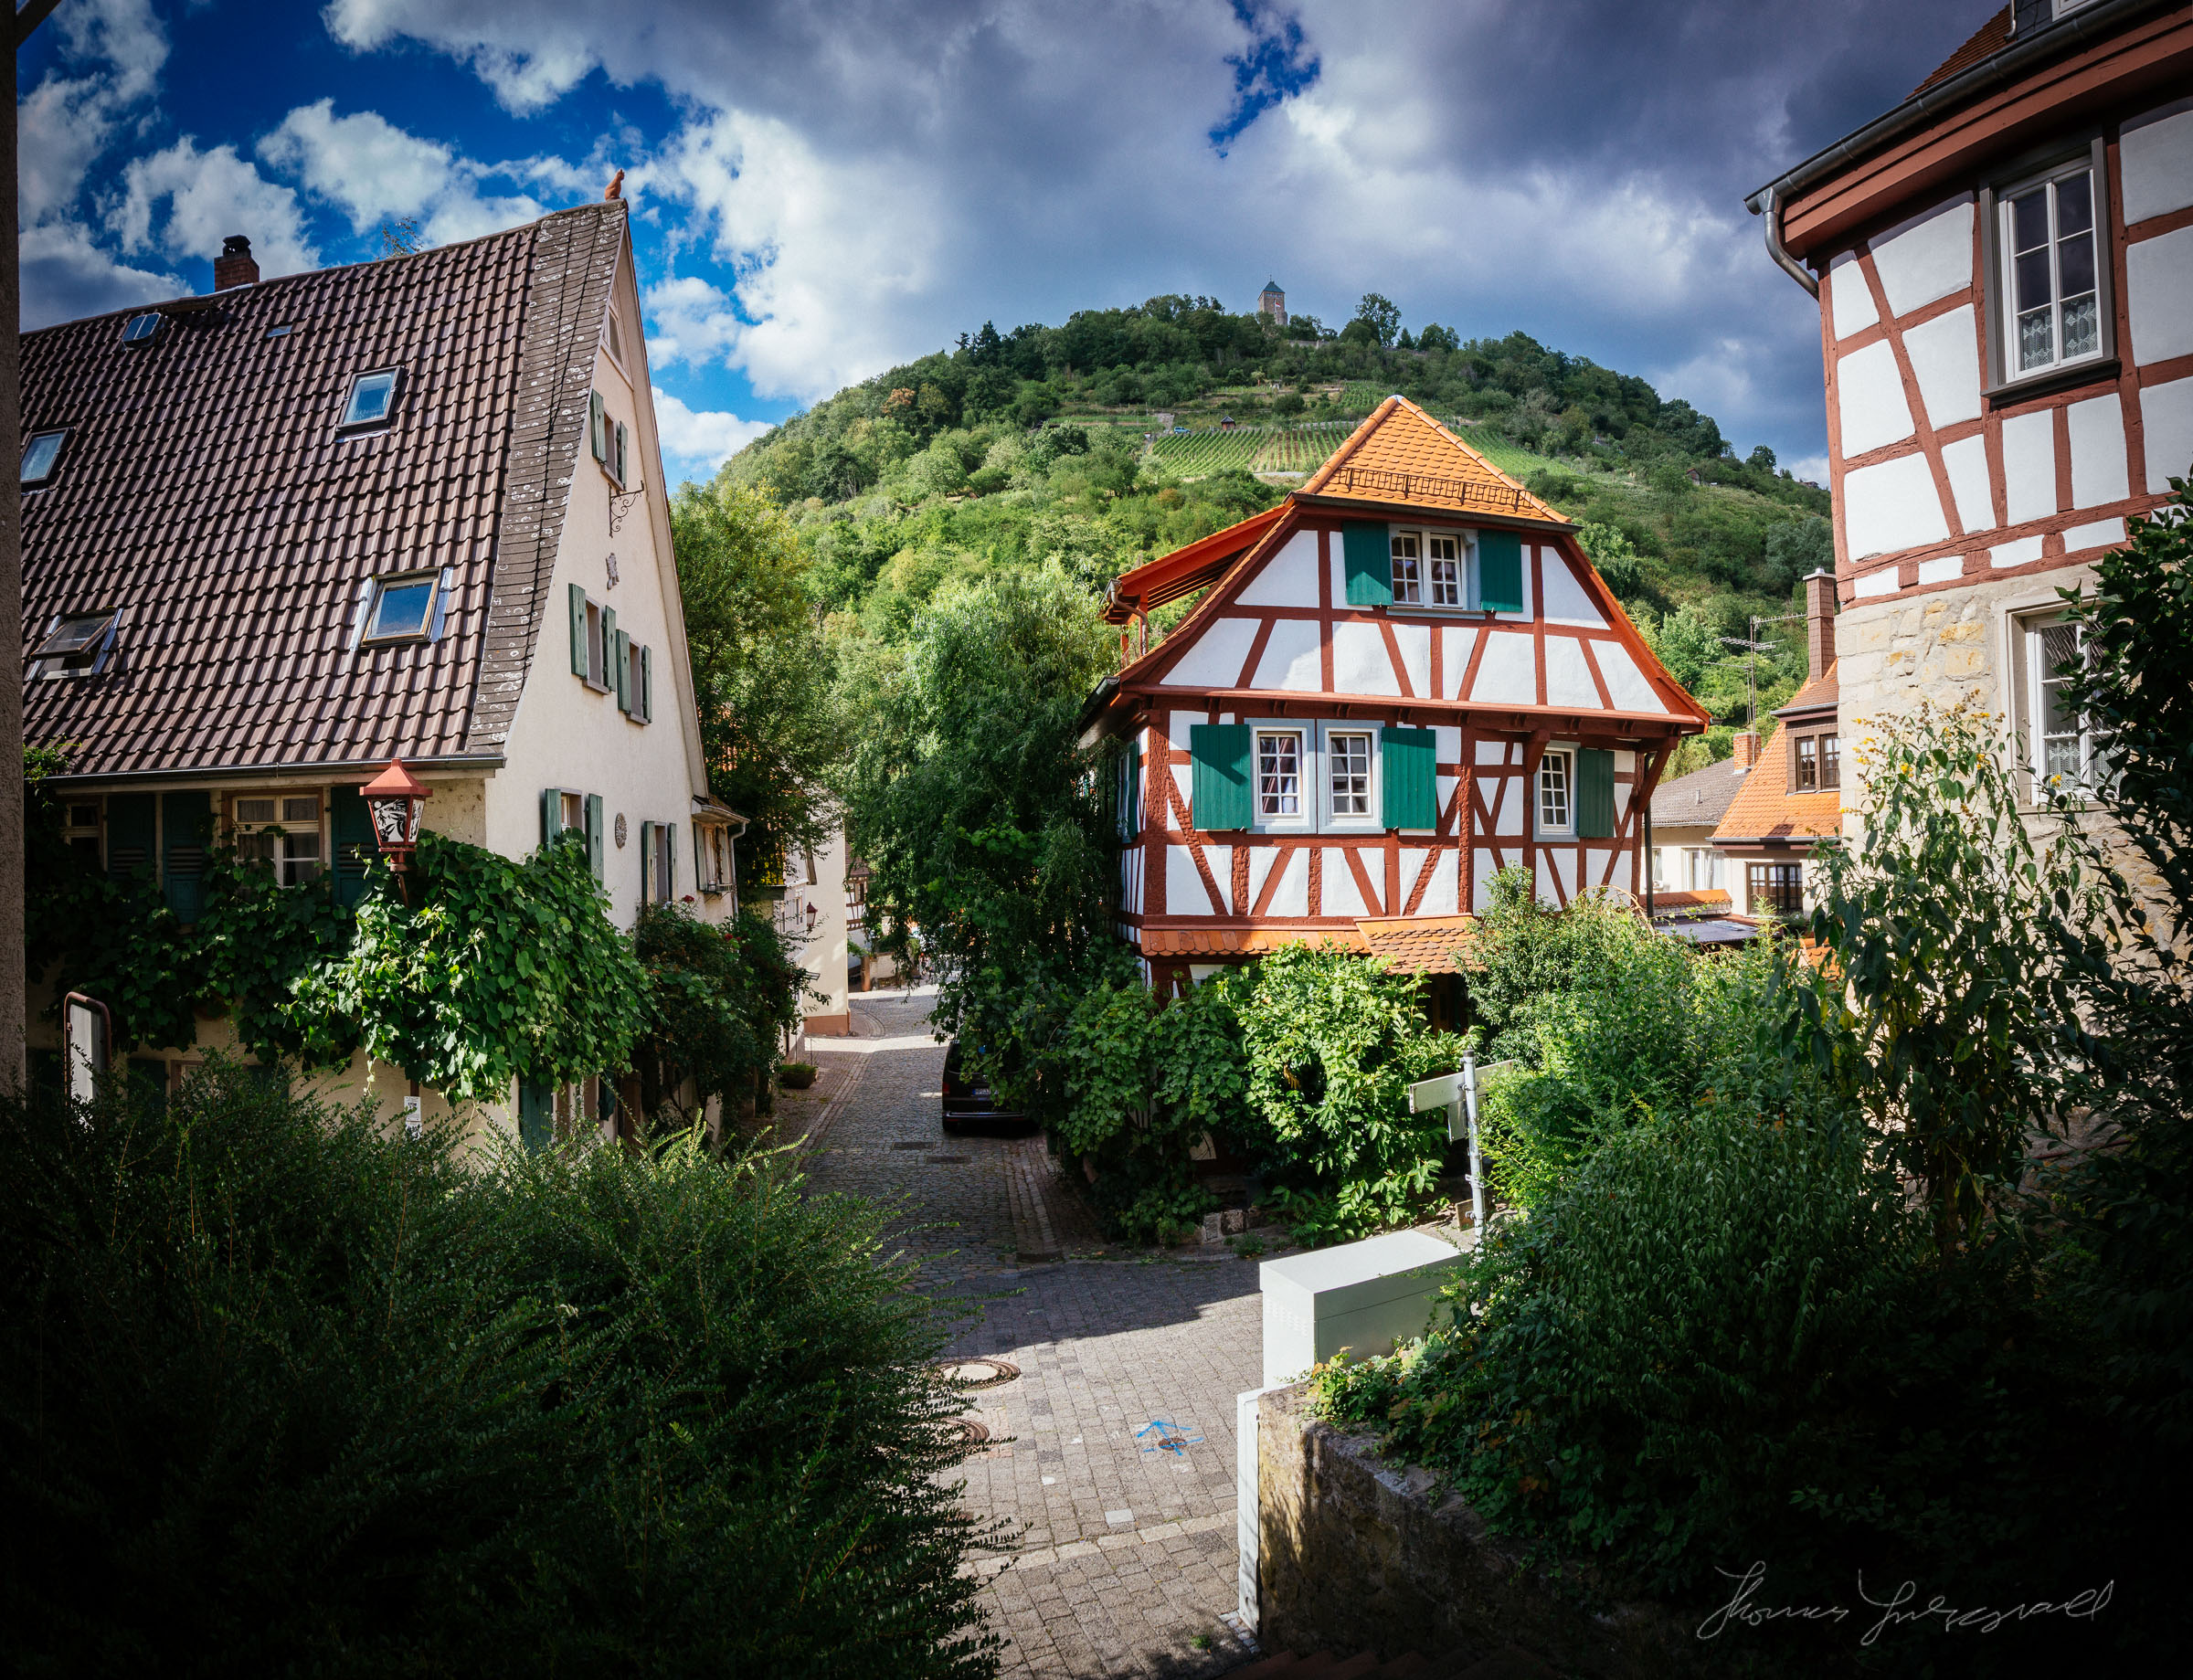 Old street and buildings, Heppenheim, Germany